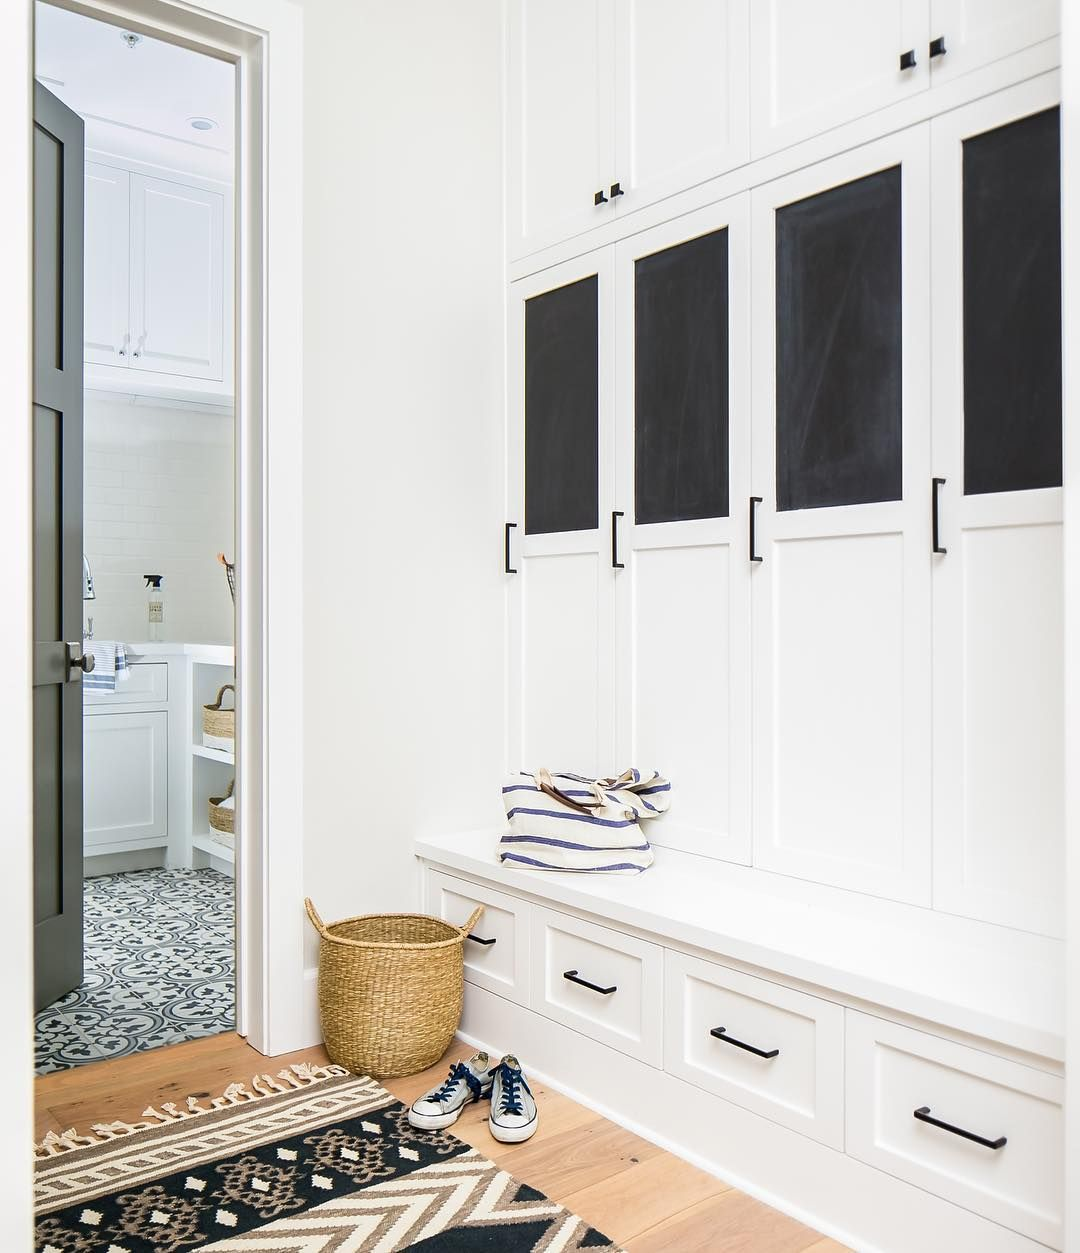 Entryway Mudroom with chalkboard and lockers - @tiffanygharris